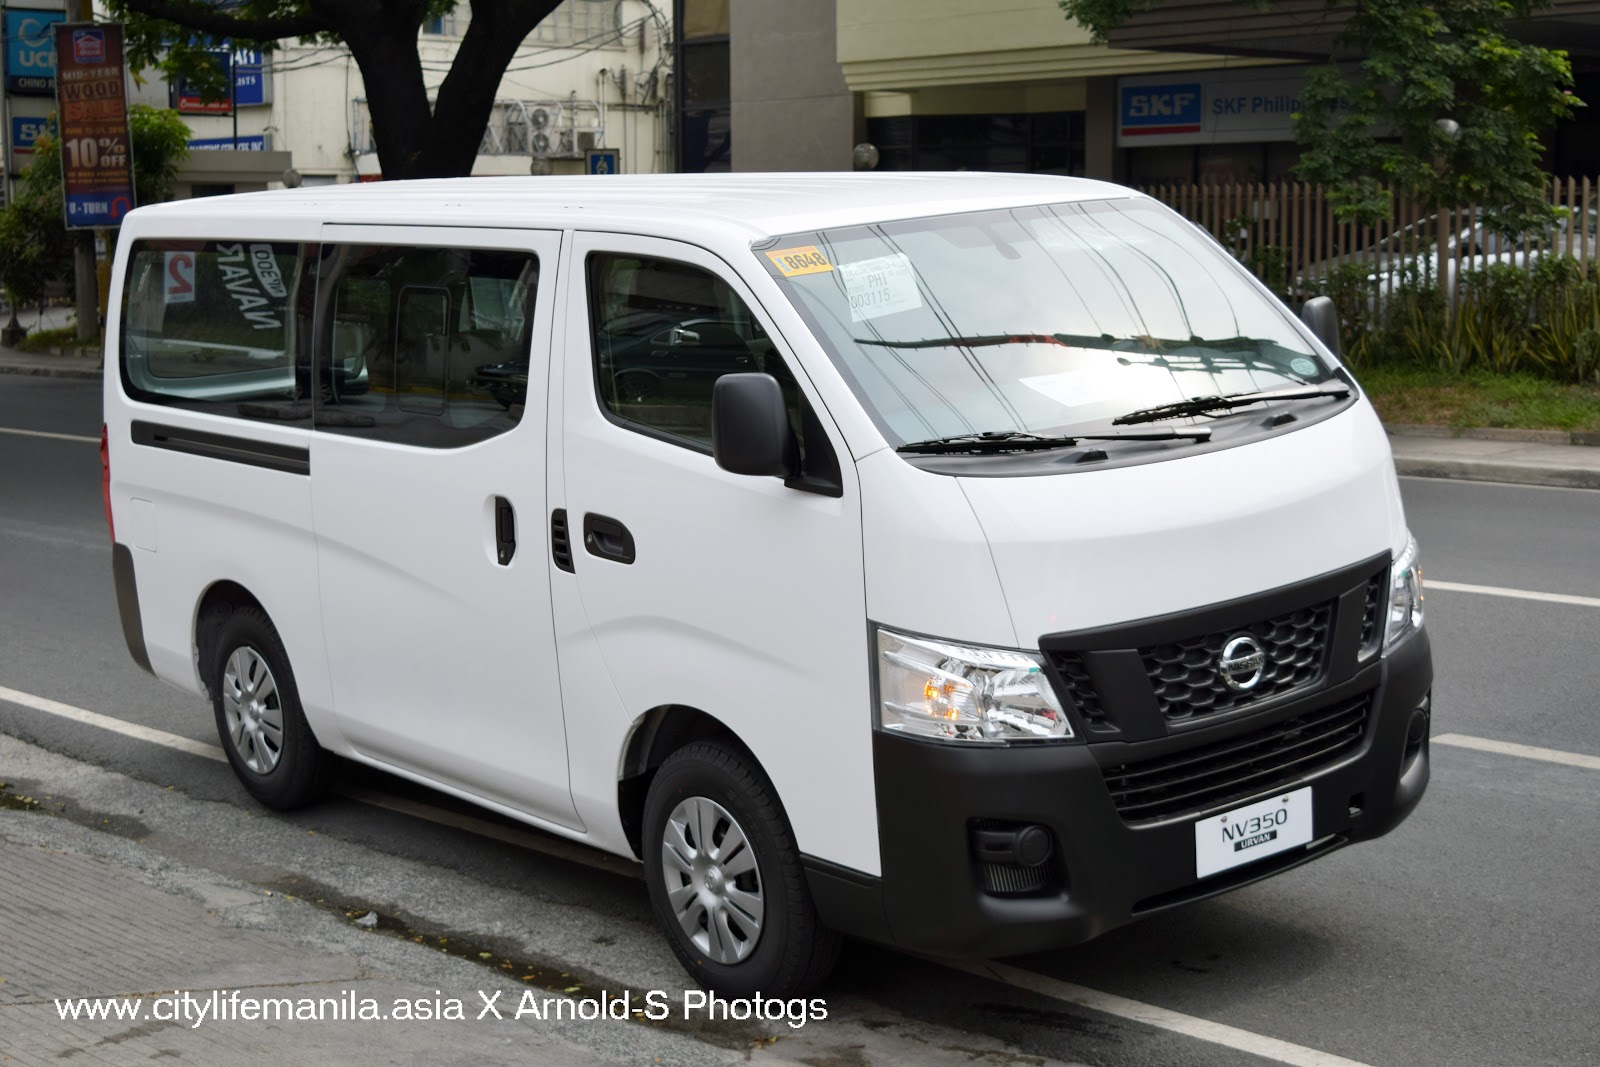 Nissan officially launched the all new nissan nv 350 urvan one of the iconic people mover vehicle will set pace again to enticed filipino and deliver